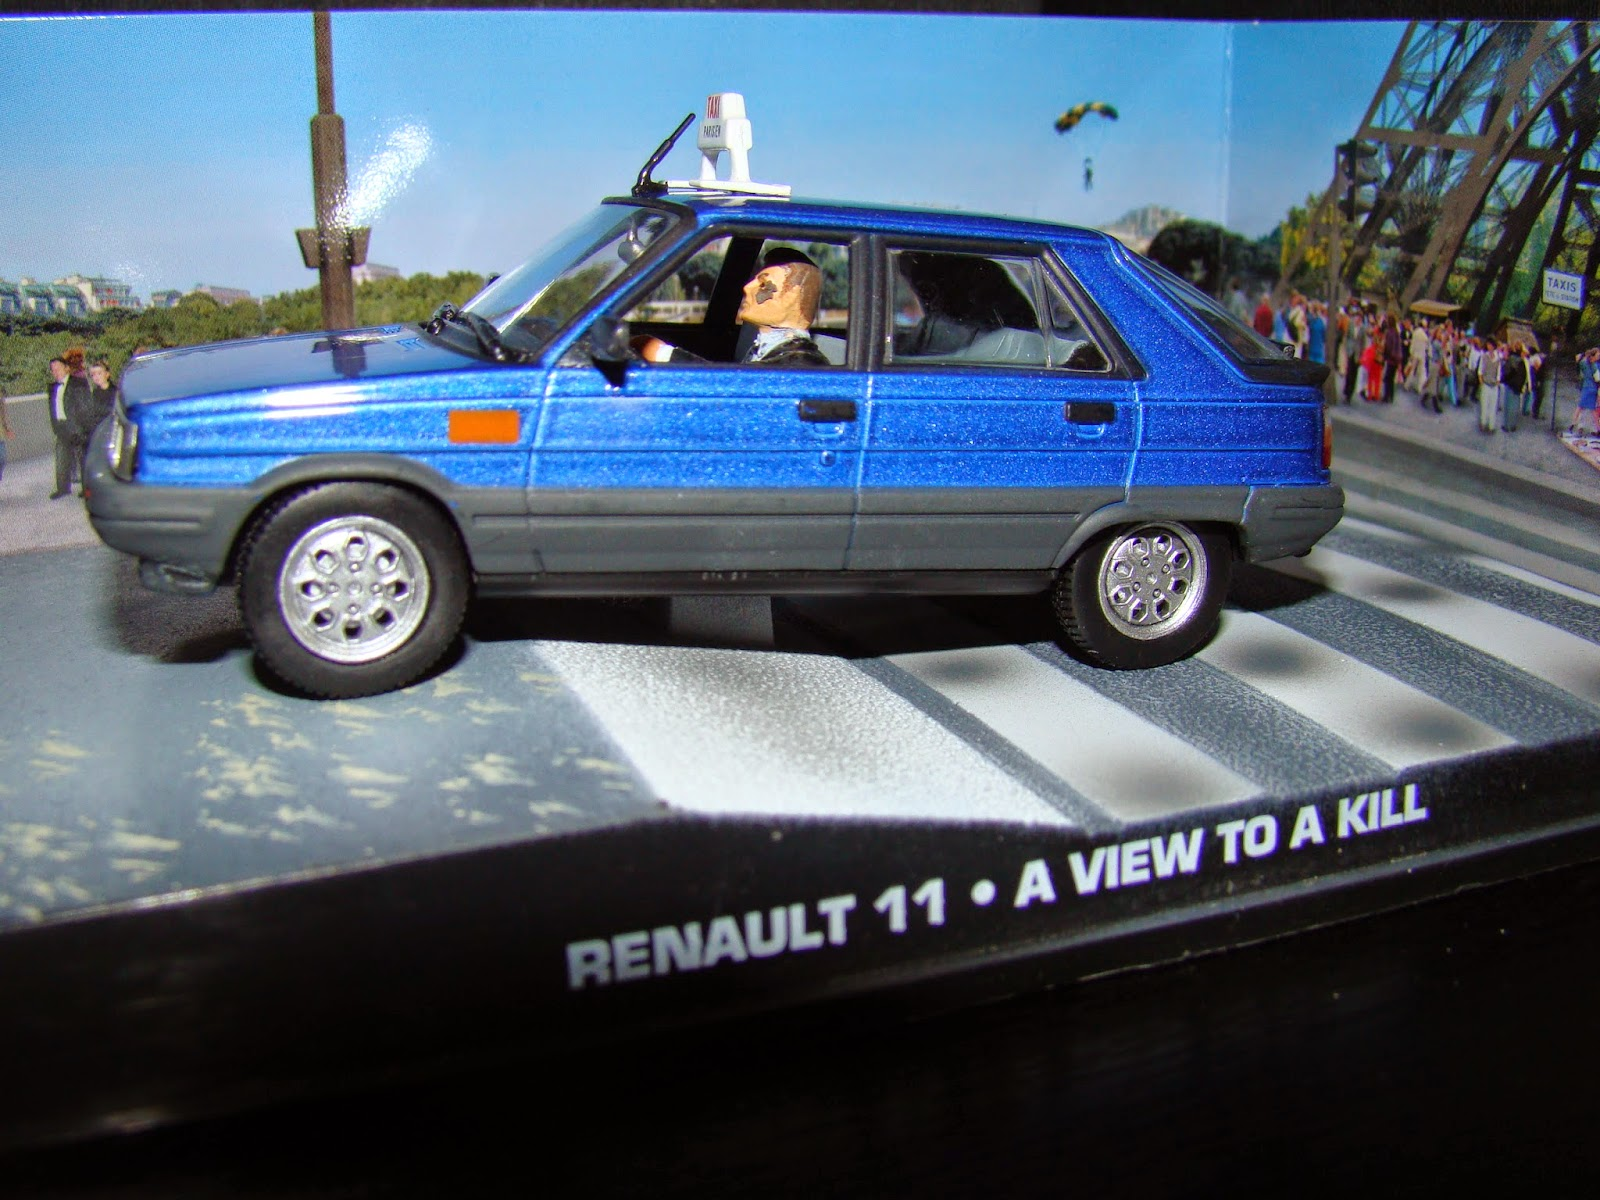 Renault 11 taxi mitad auto se enfrenta a la muerte a view to kill James Bond 007